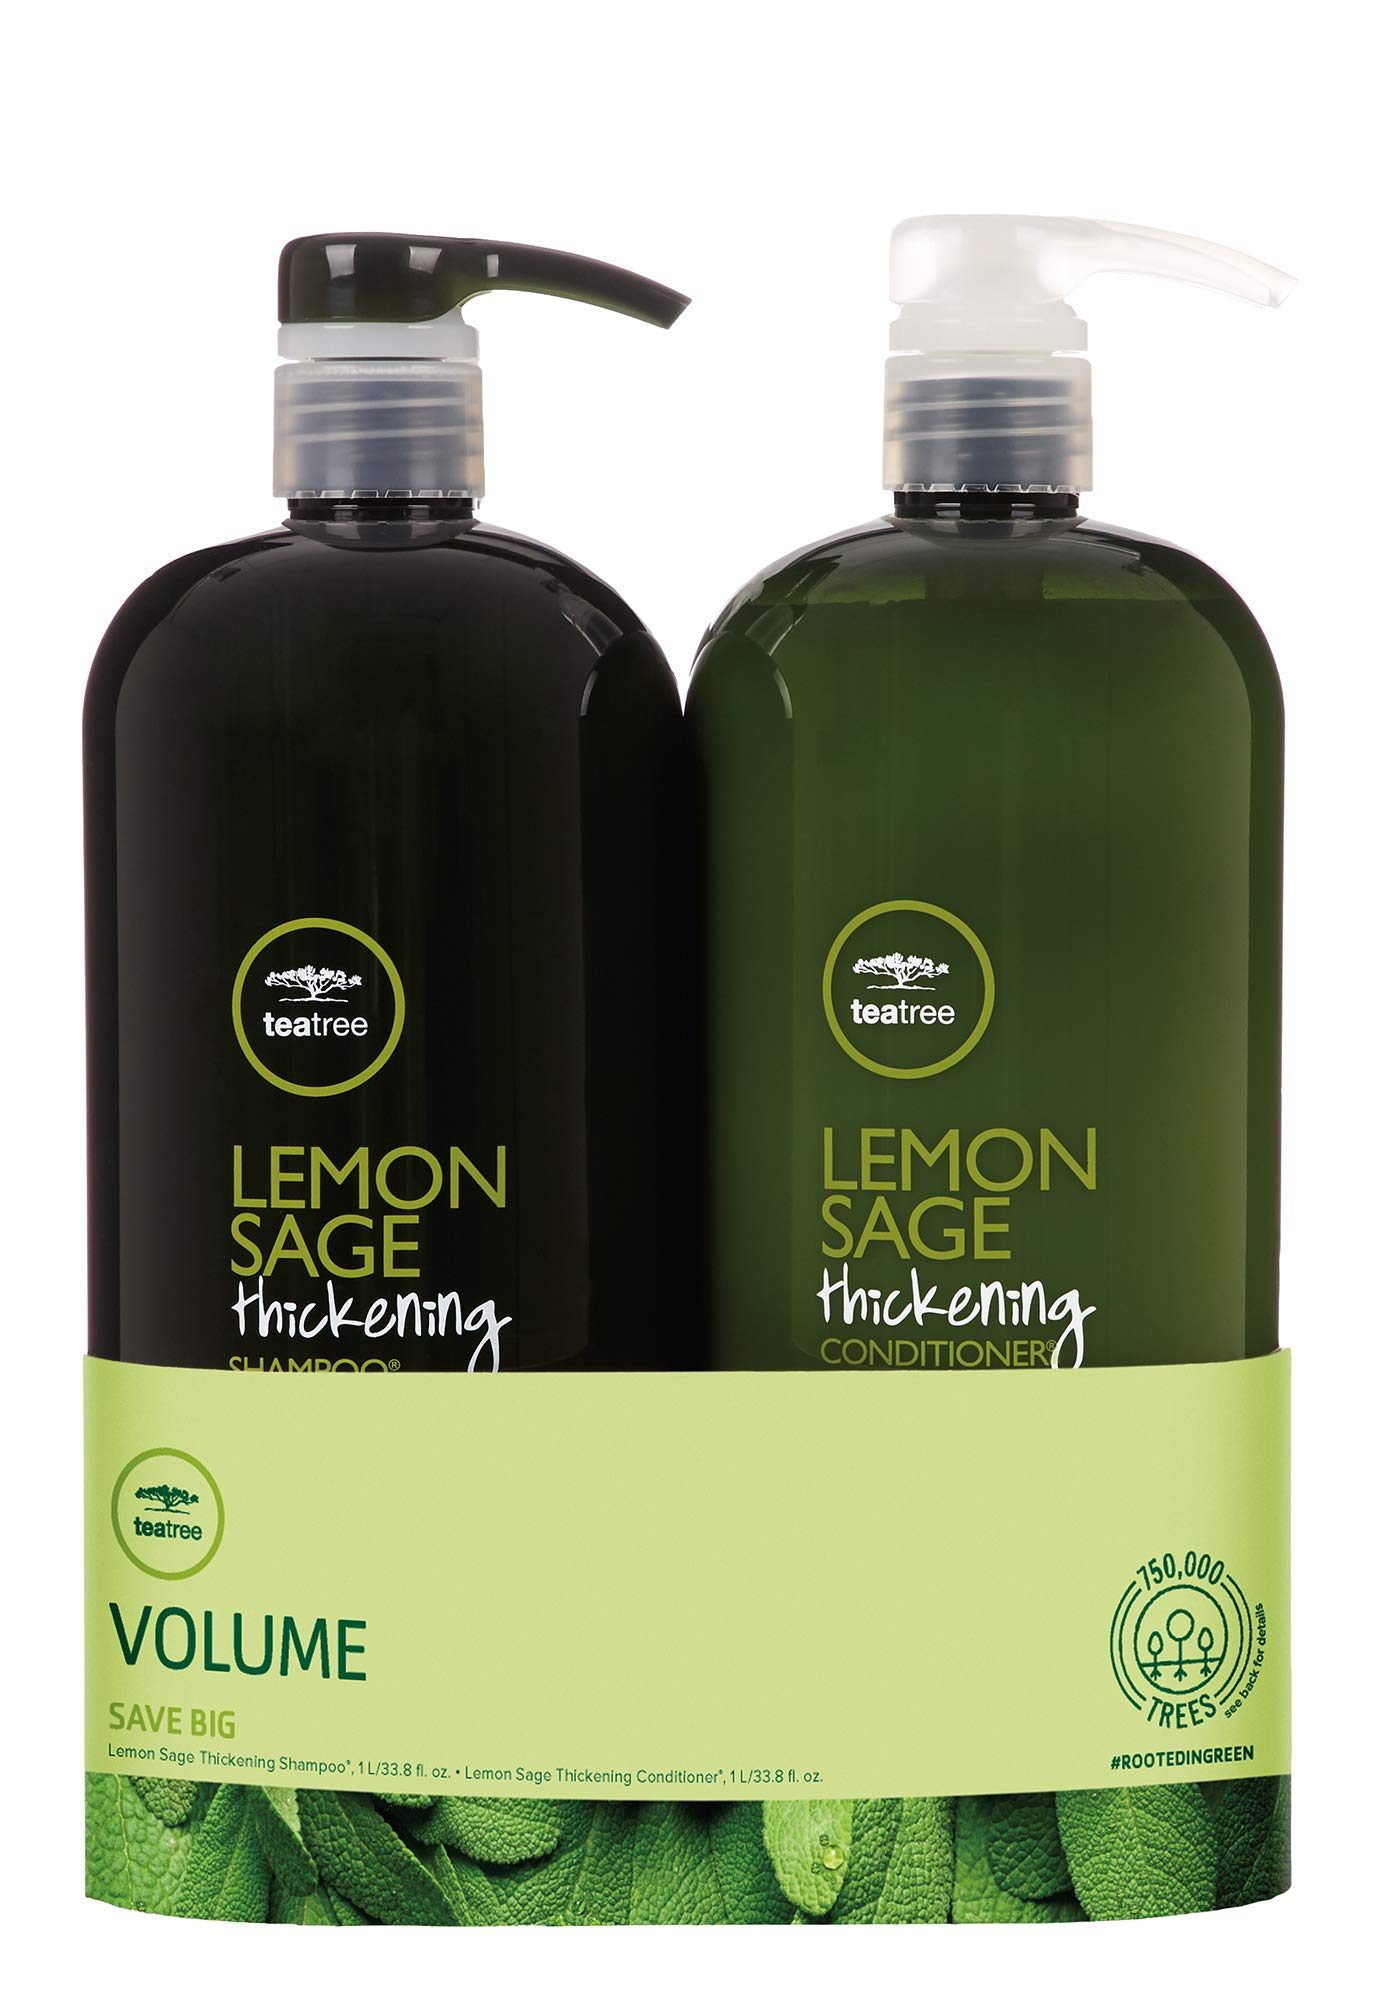 Volume Lemon Sage Thickening Liter Duo Set by Tea Tree